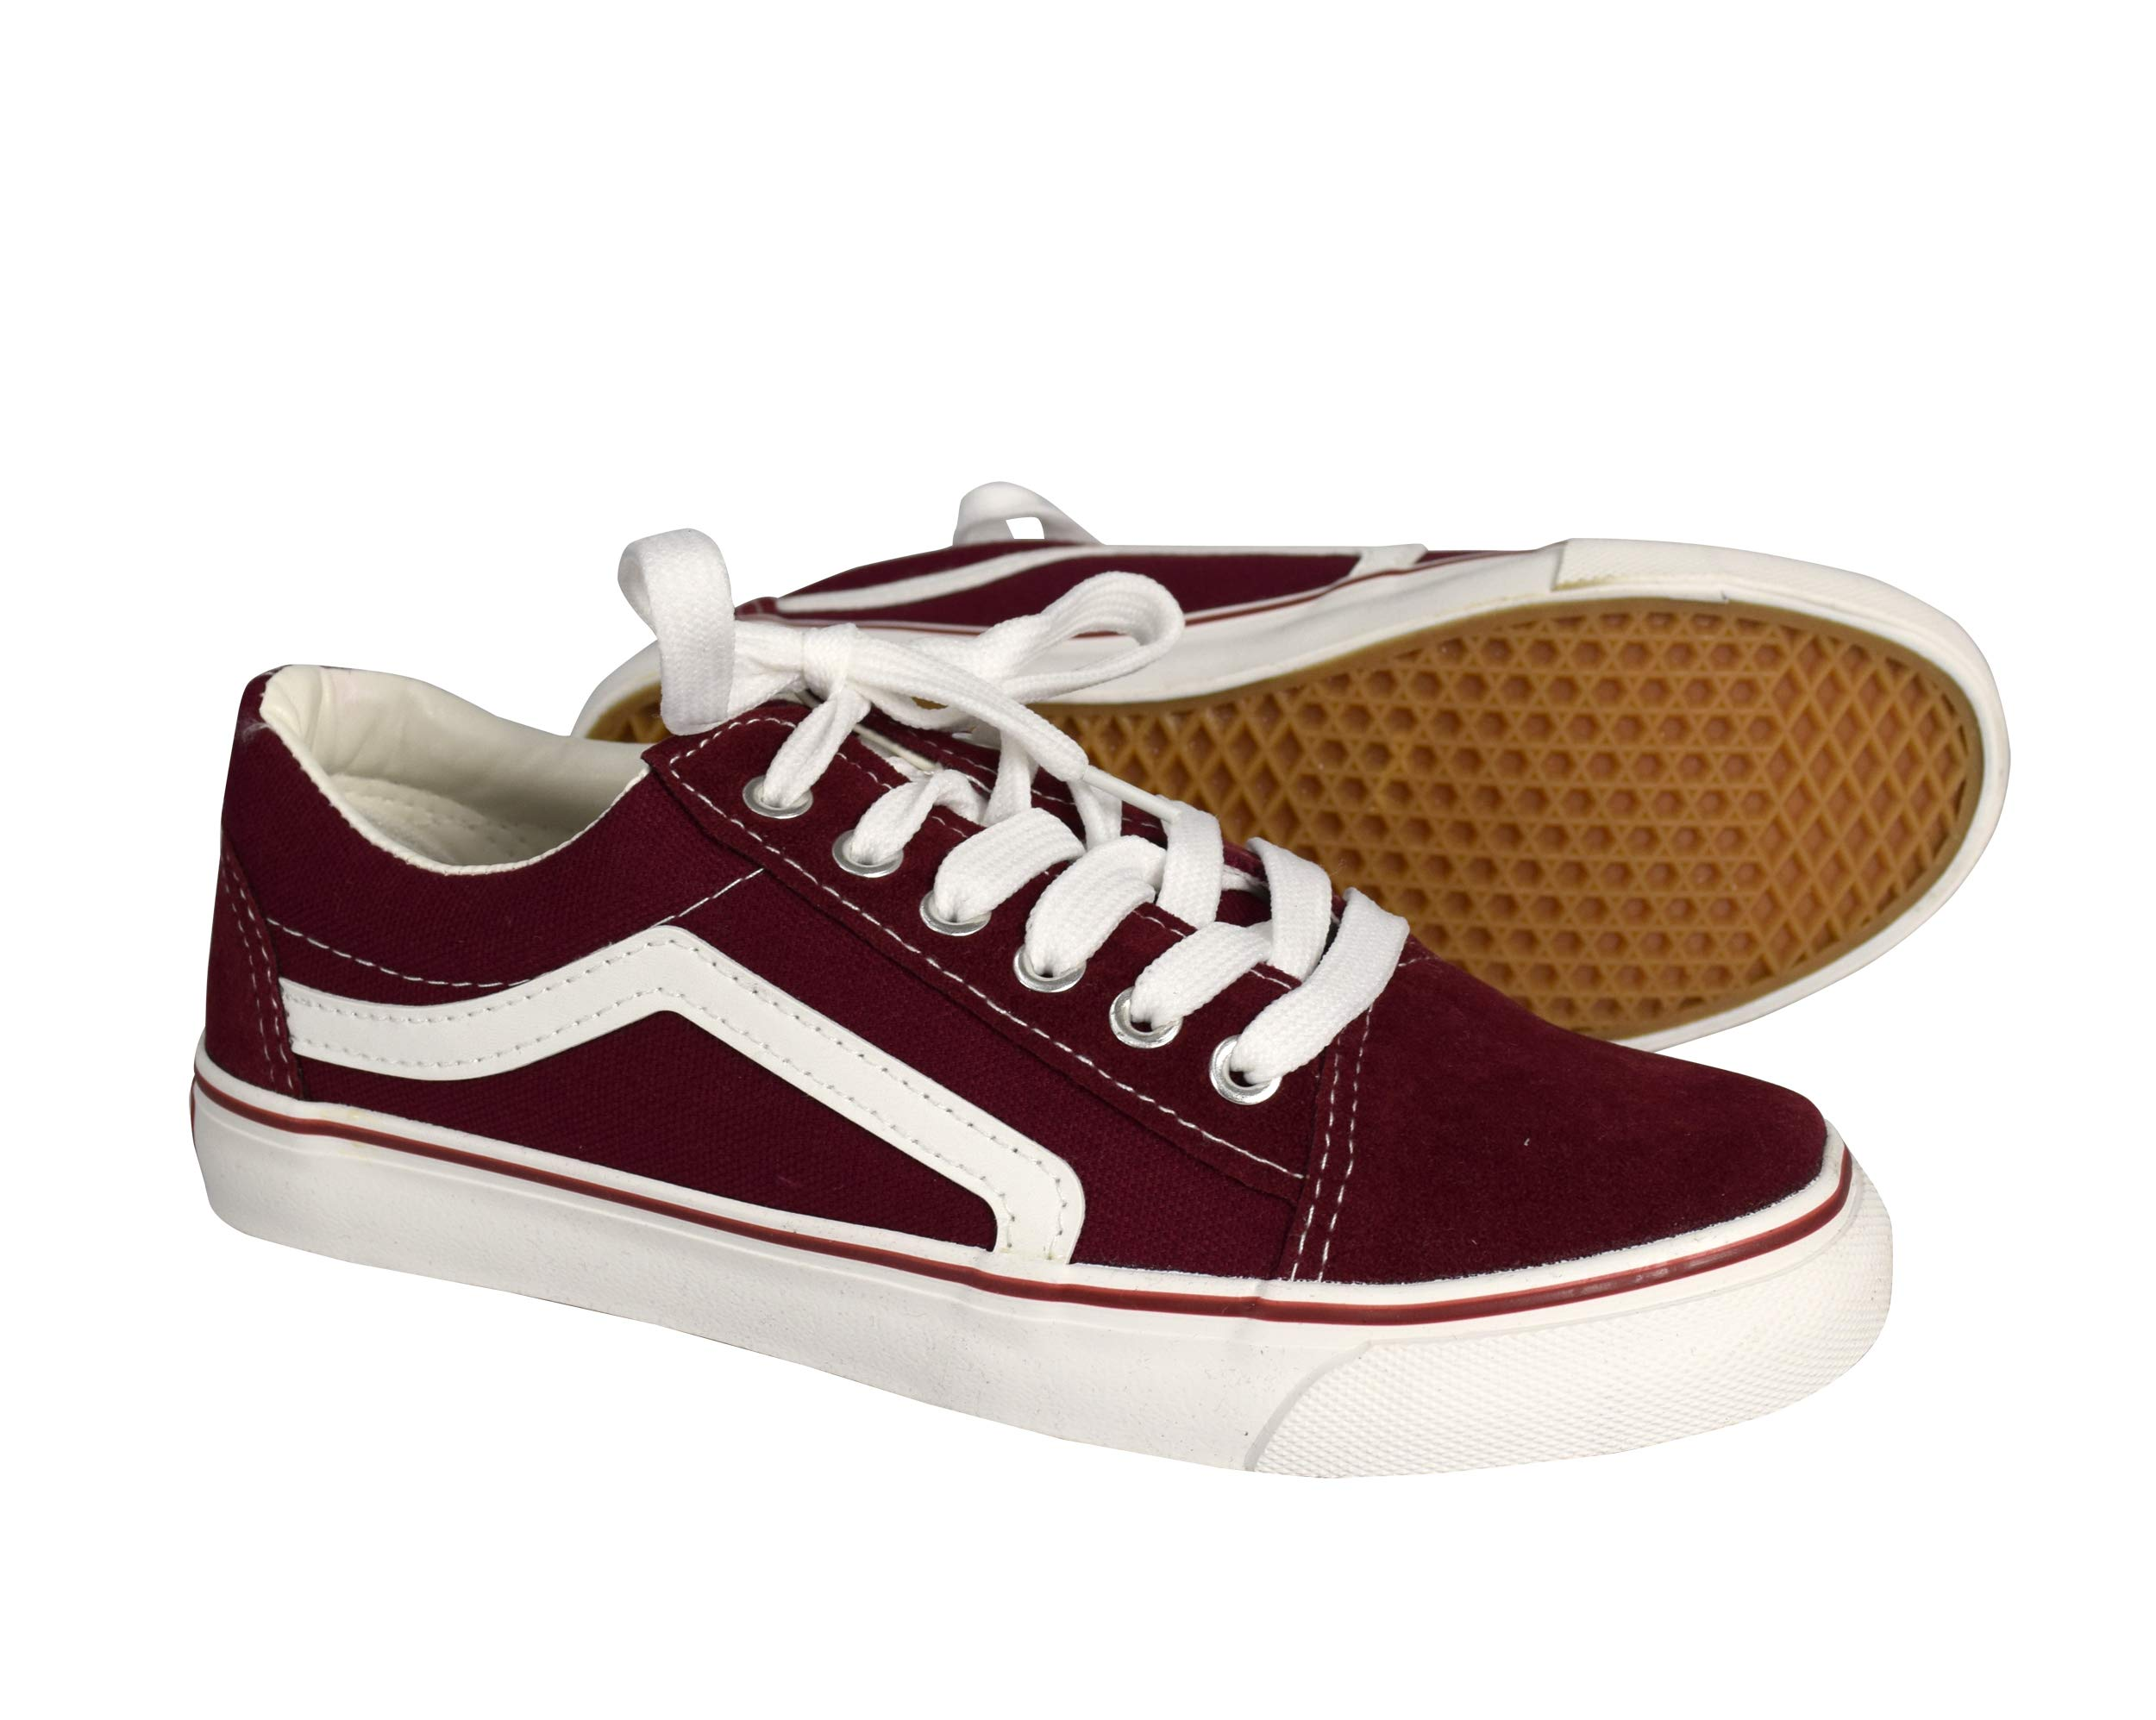 Peach Couture Old School Womens Comfortable Sneakers Skater Lace up Tennis Shoes Burgundy, 8